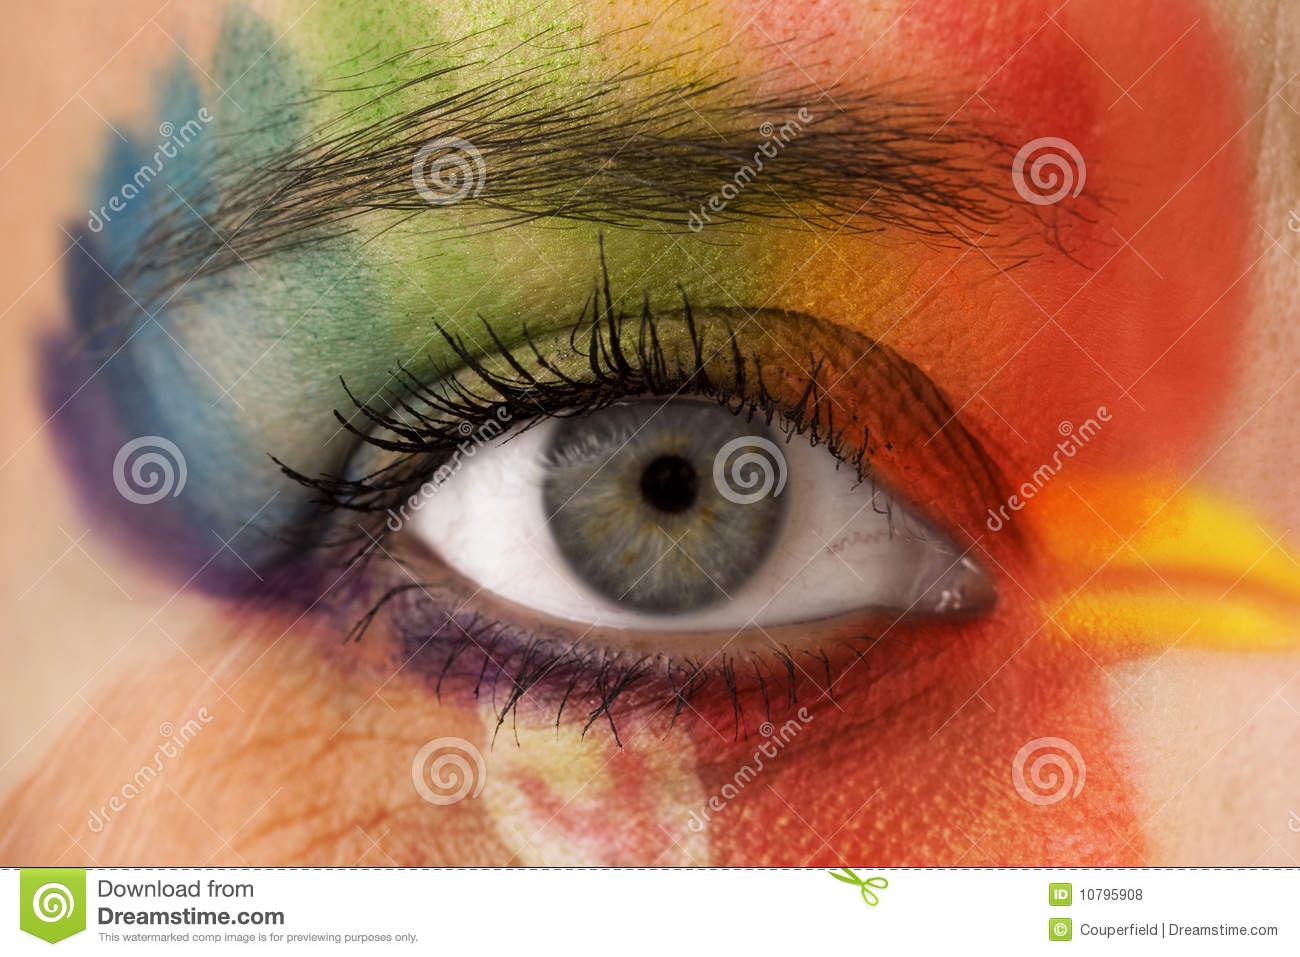 Eye make up - rainbow color painting in the shape of head.